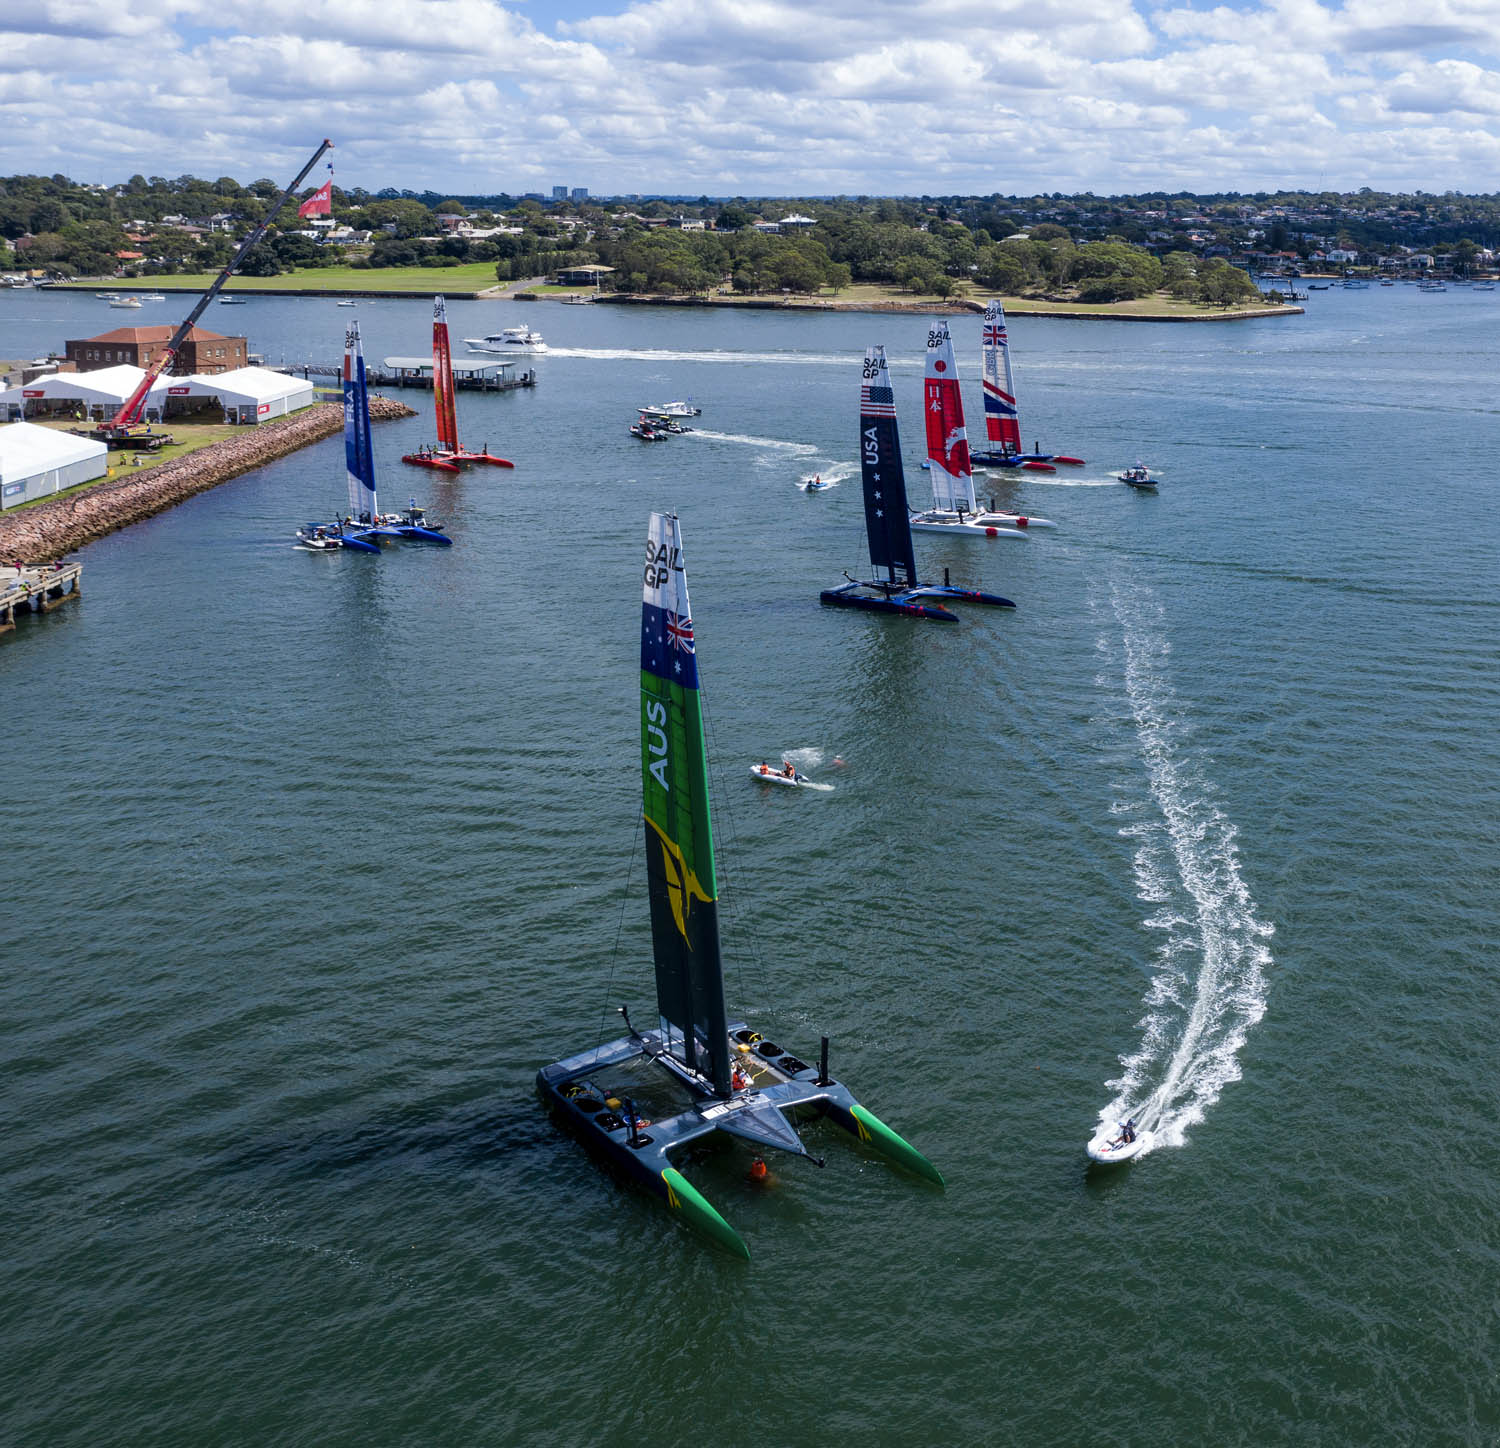 Lots of activity as the teams prepare for SailGP race one at the Cockatoo Island base